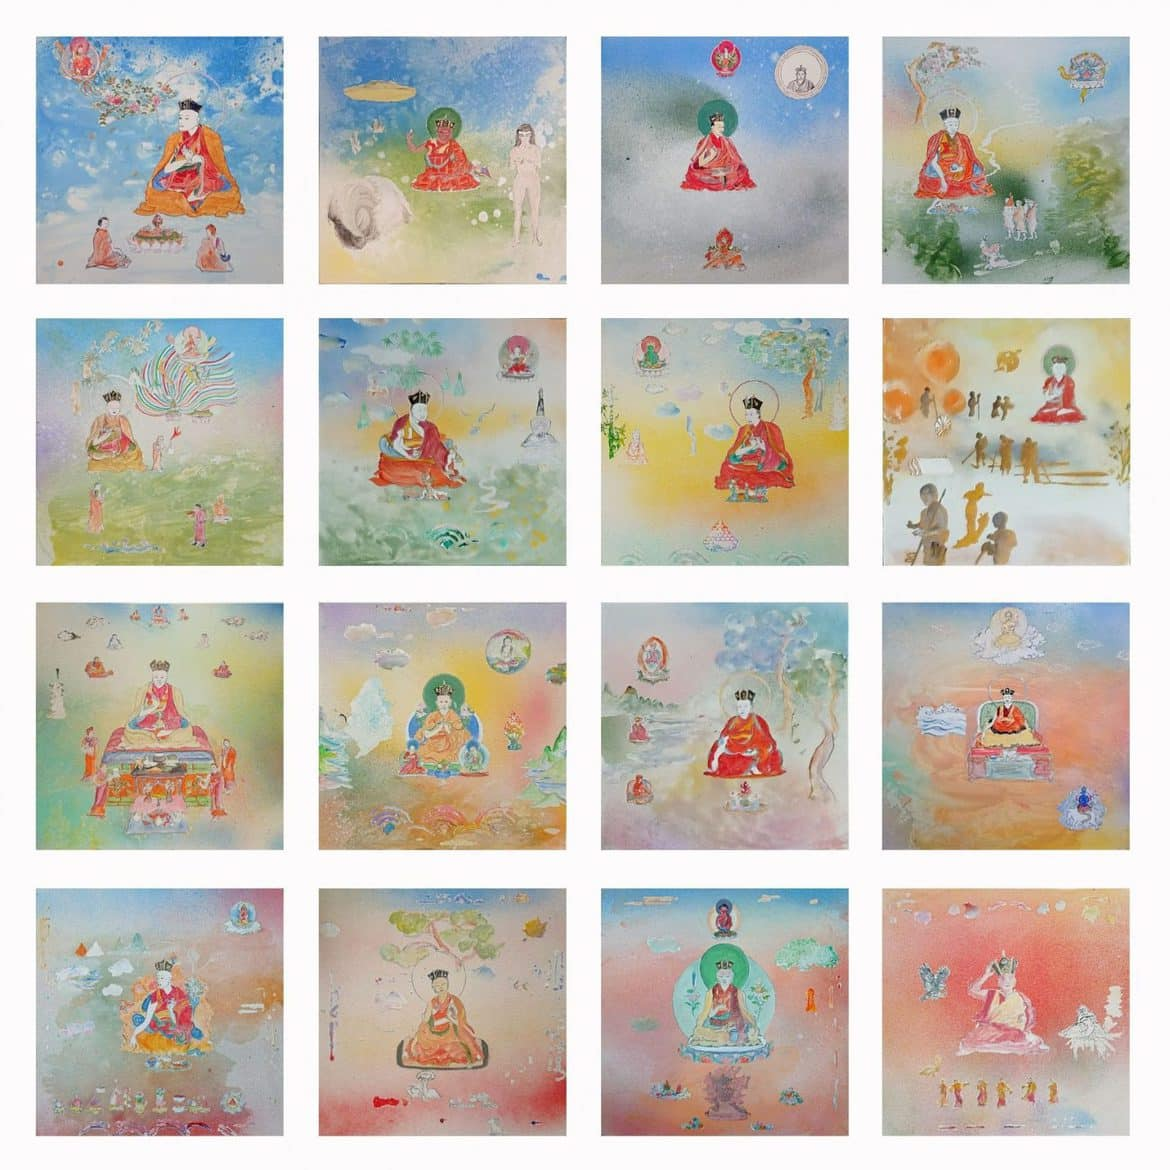 Tim Johnson, '16 Karmapas', 2019, acrylic on canvas, set of 16 paintings, <br /> ca. 100 x 120 cm overall, 20 x 25 cm each